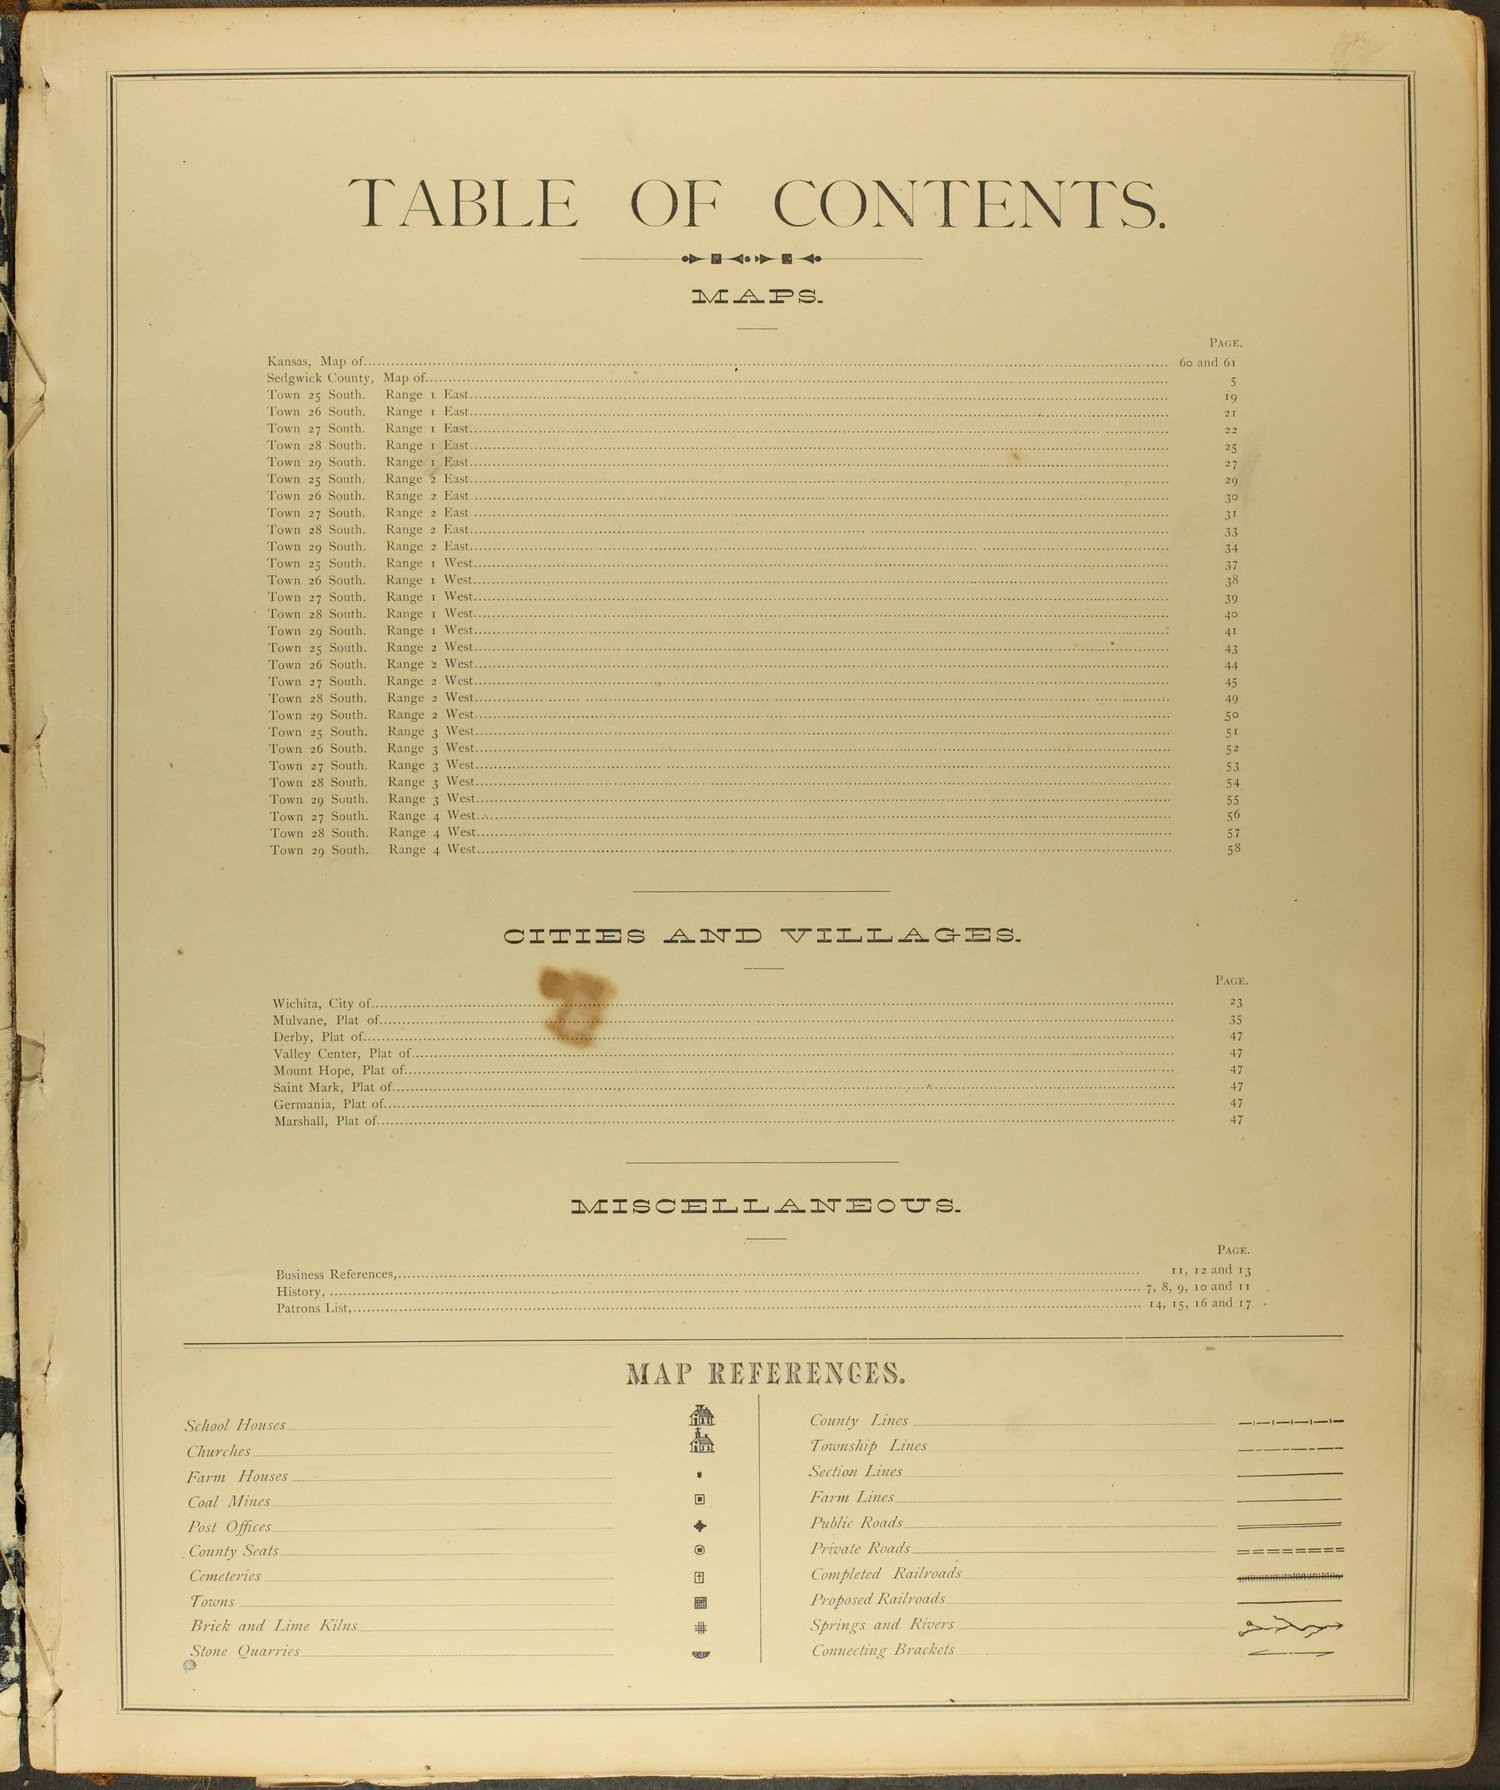 Historical Atlas of Sedgwick County, Kansas - Table of Contents